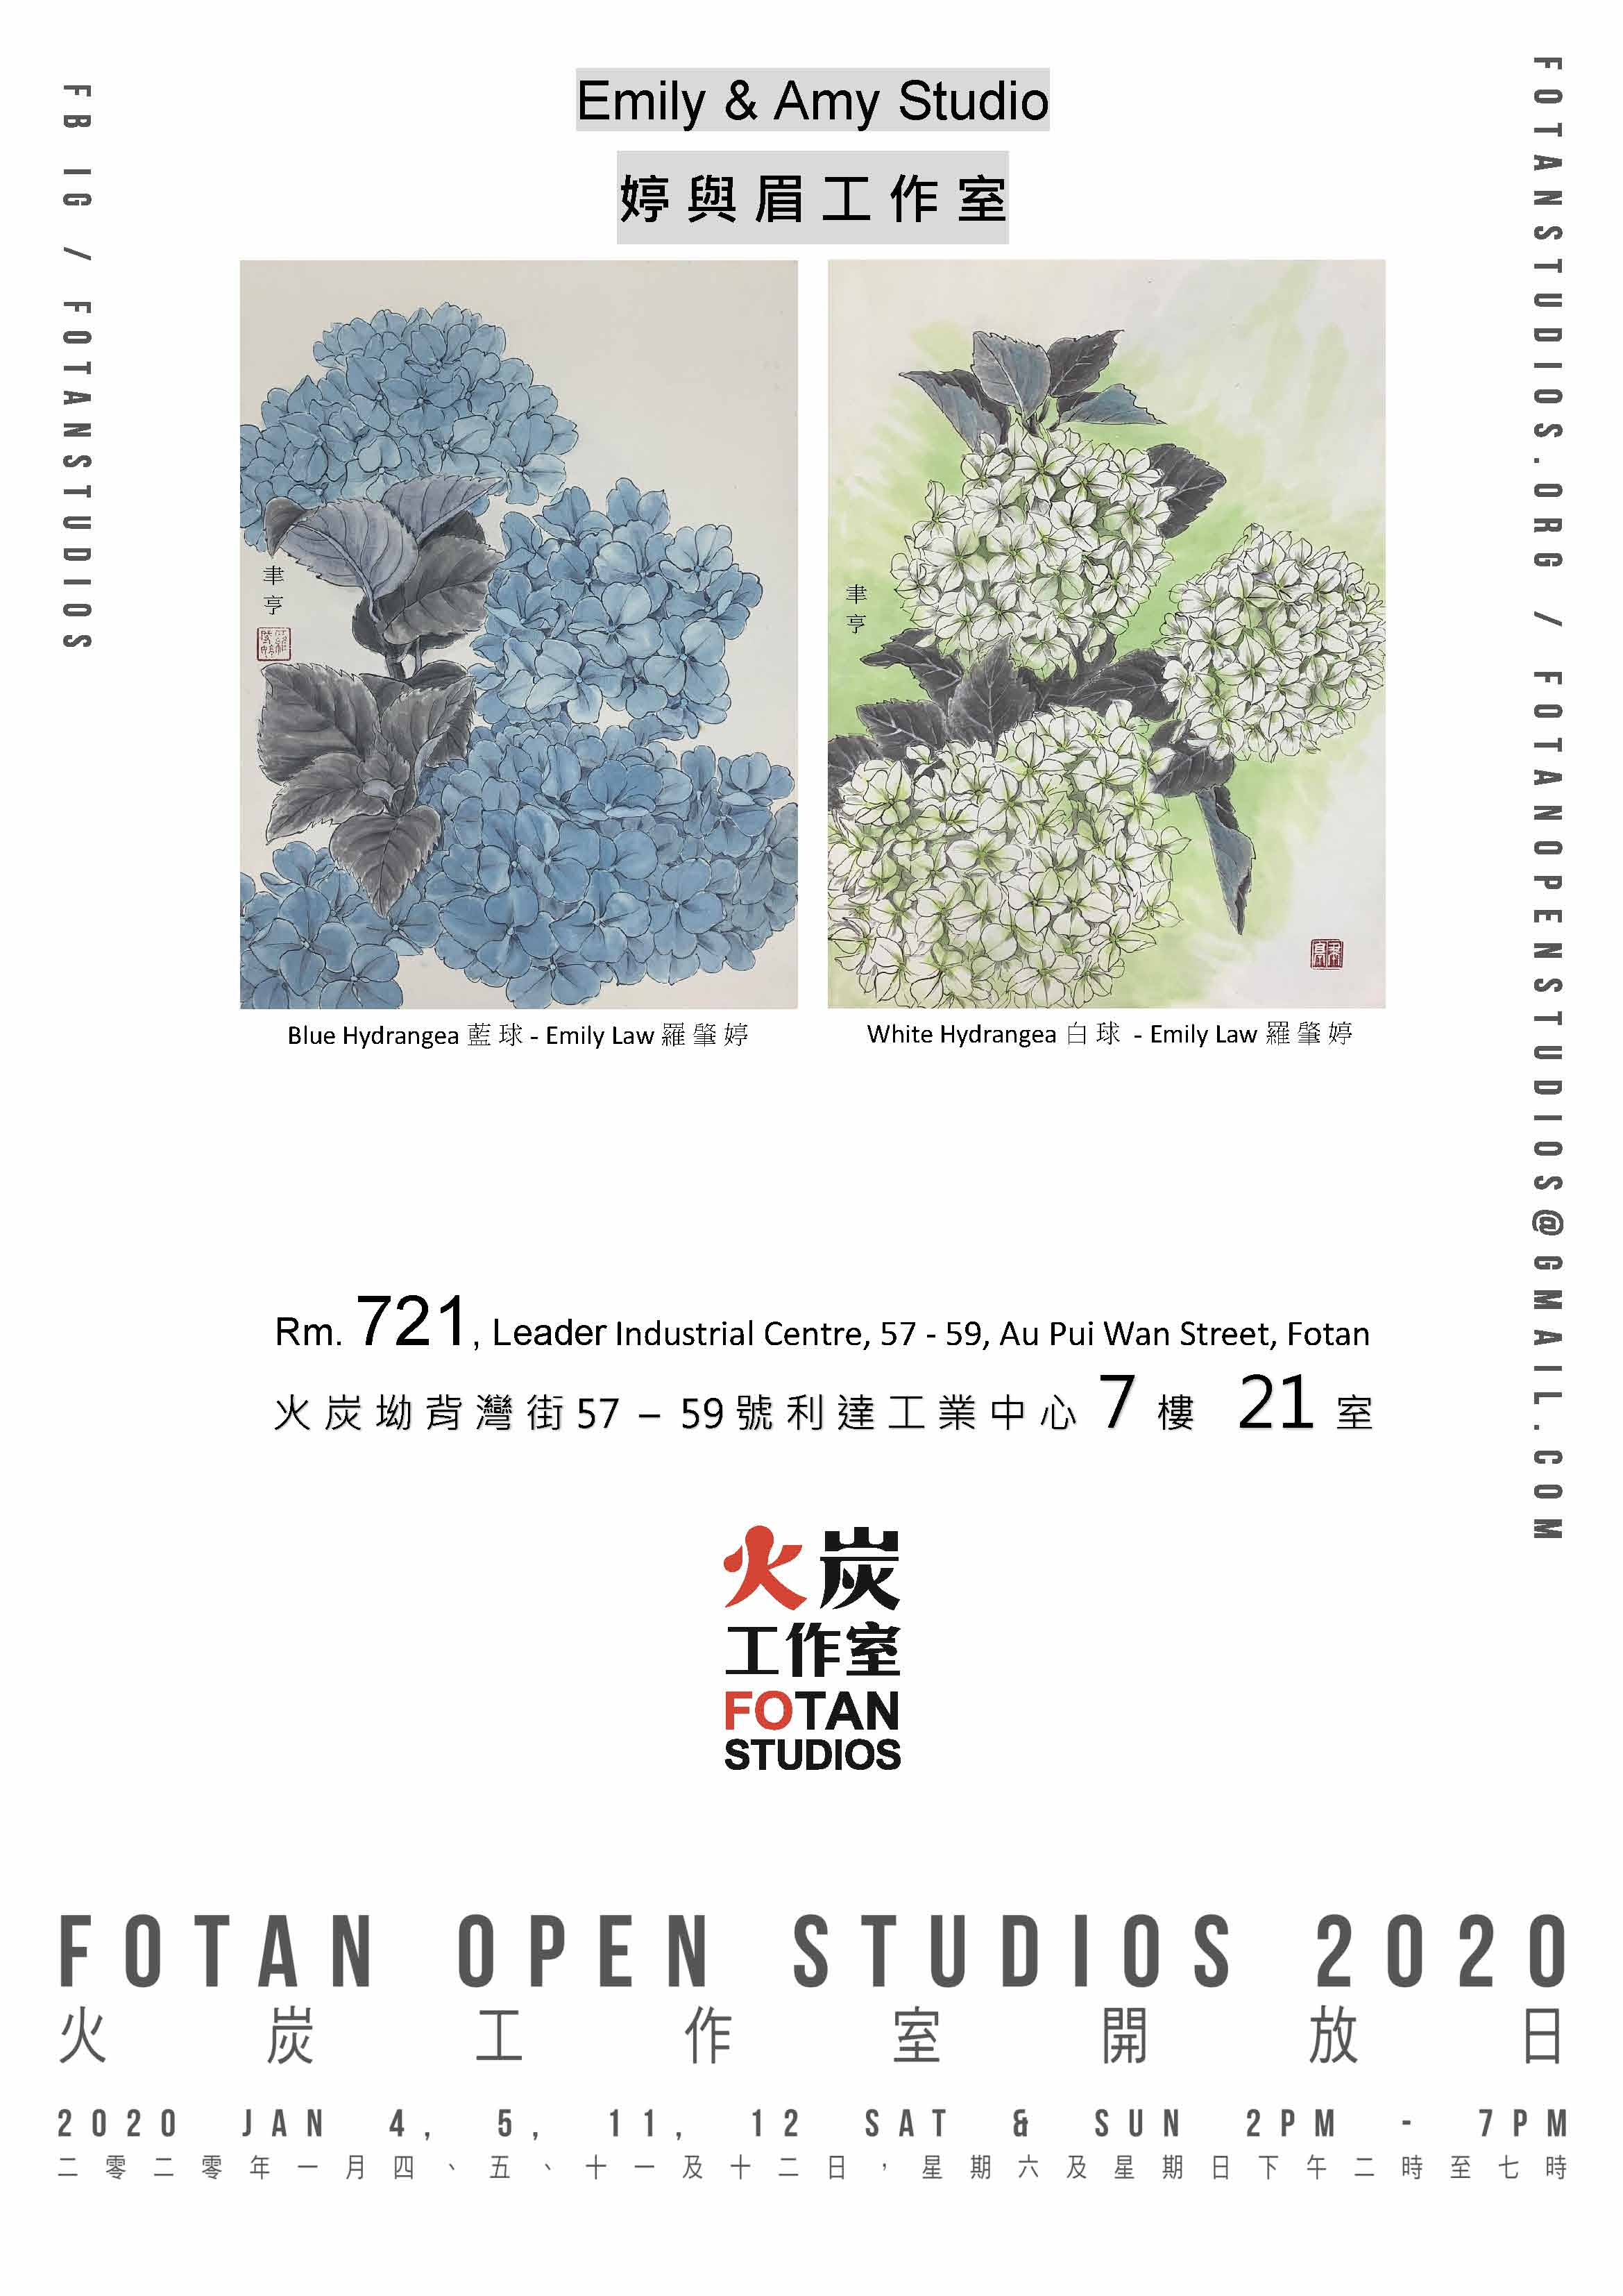 Fotan Studio Open 2020  Emily & Amy